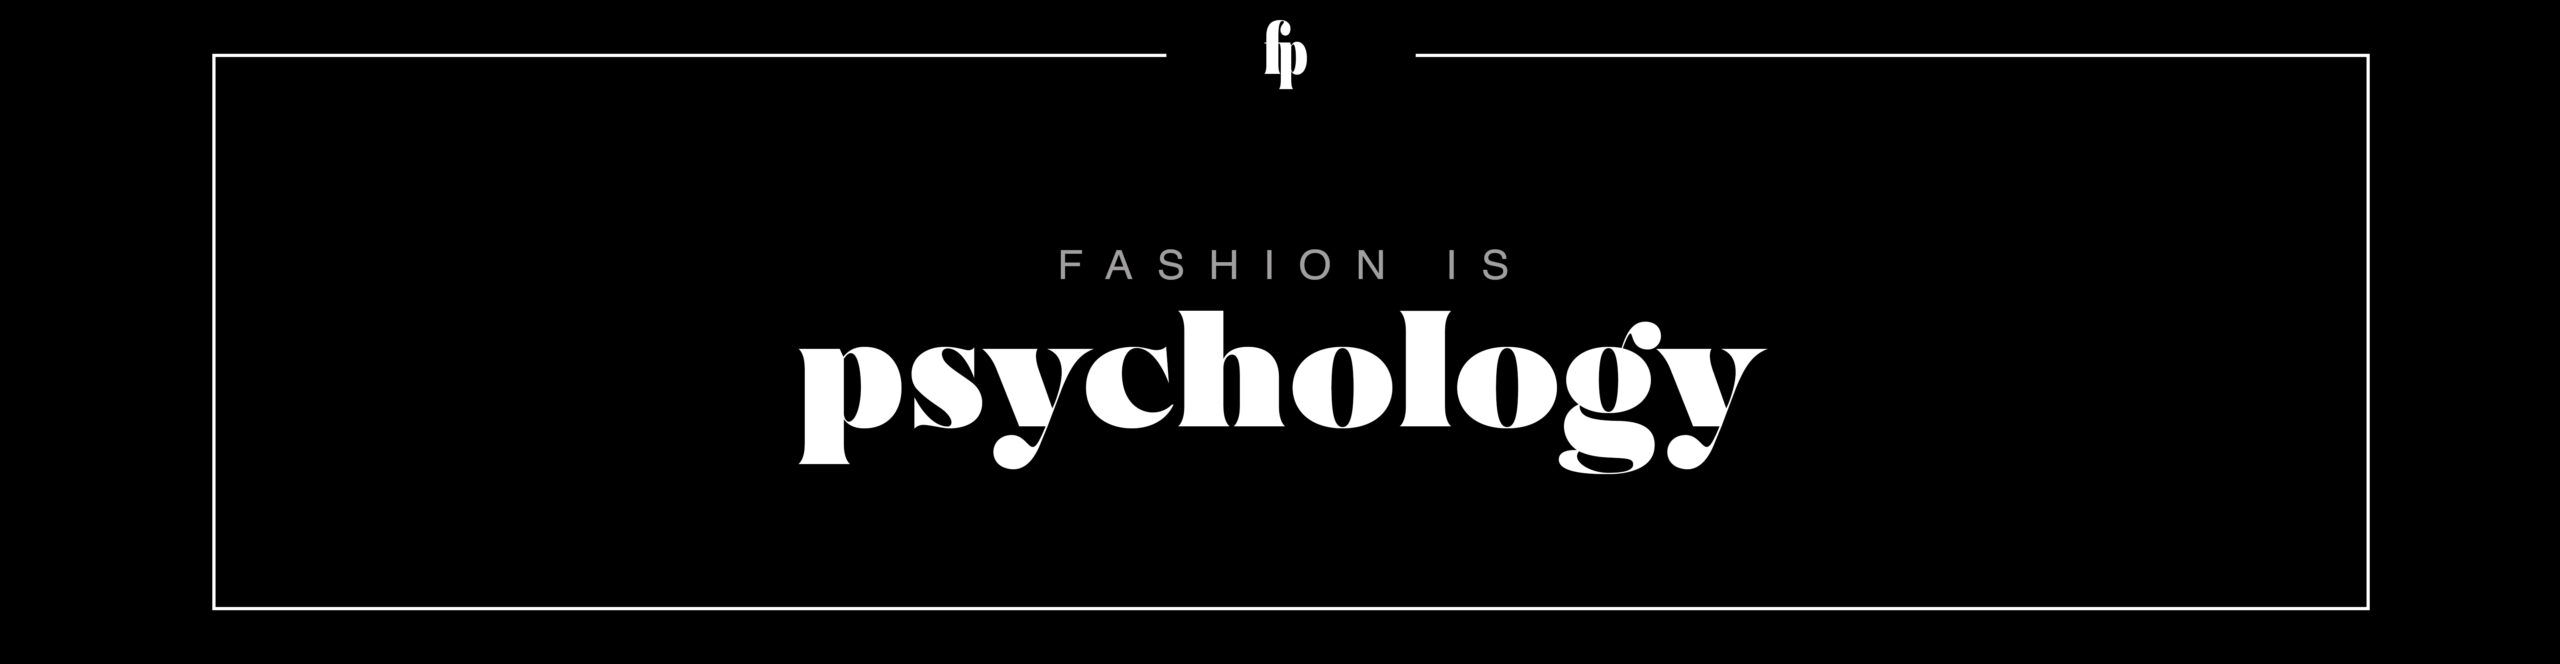 Fashion is Psychology